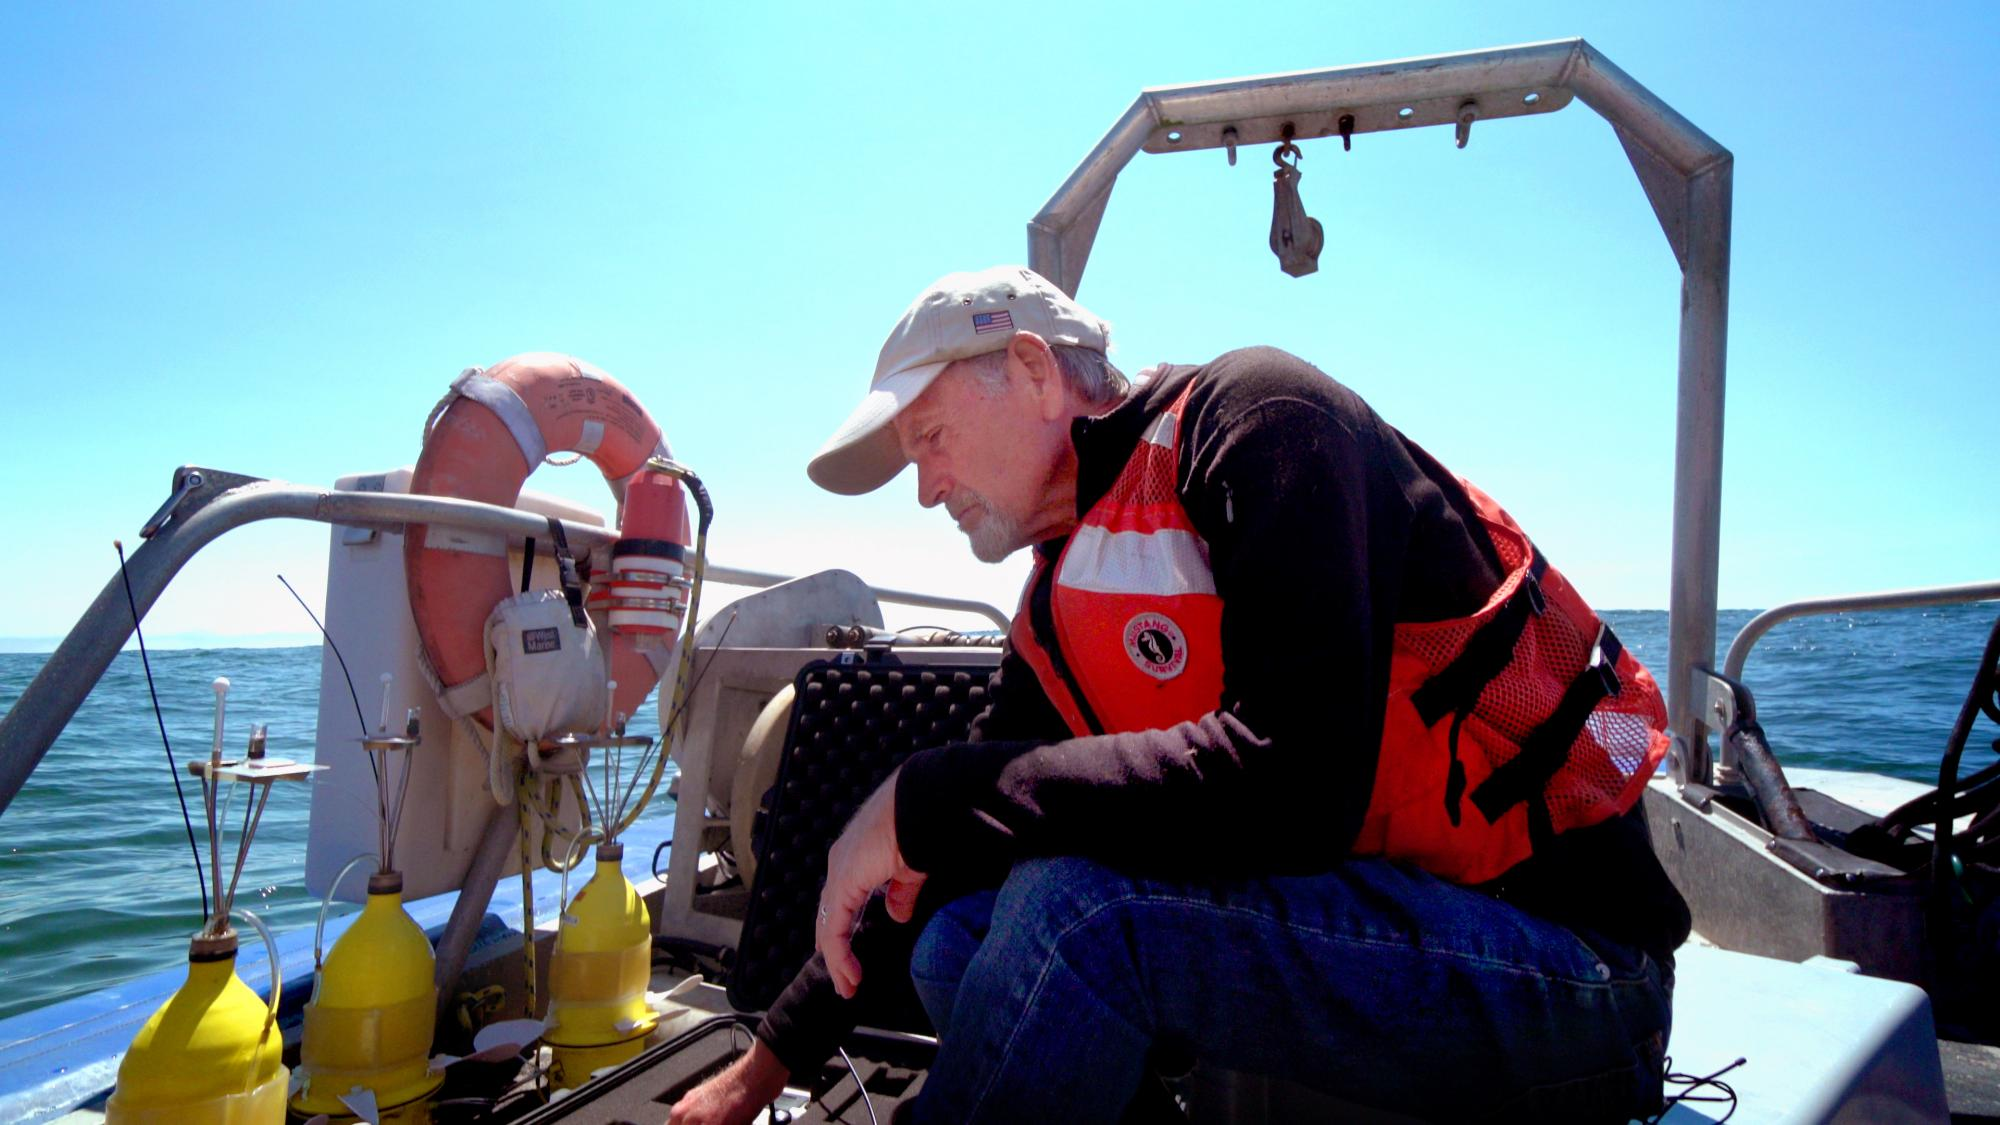 Male scientist on boat